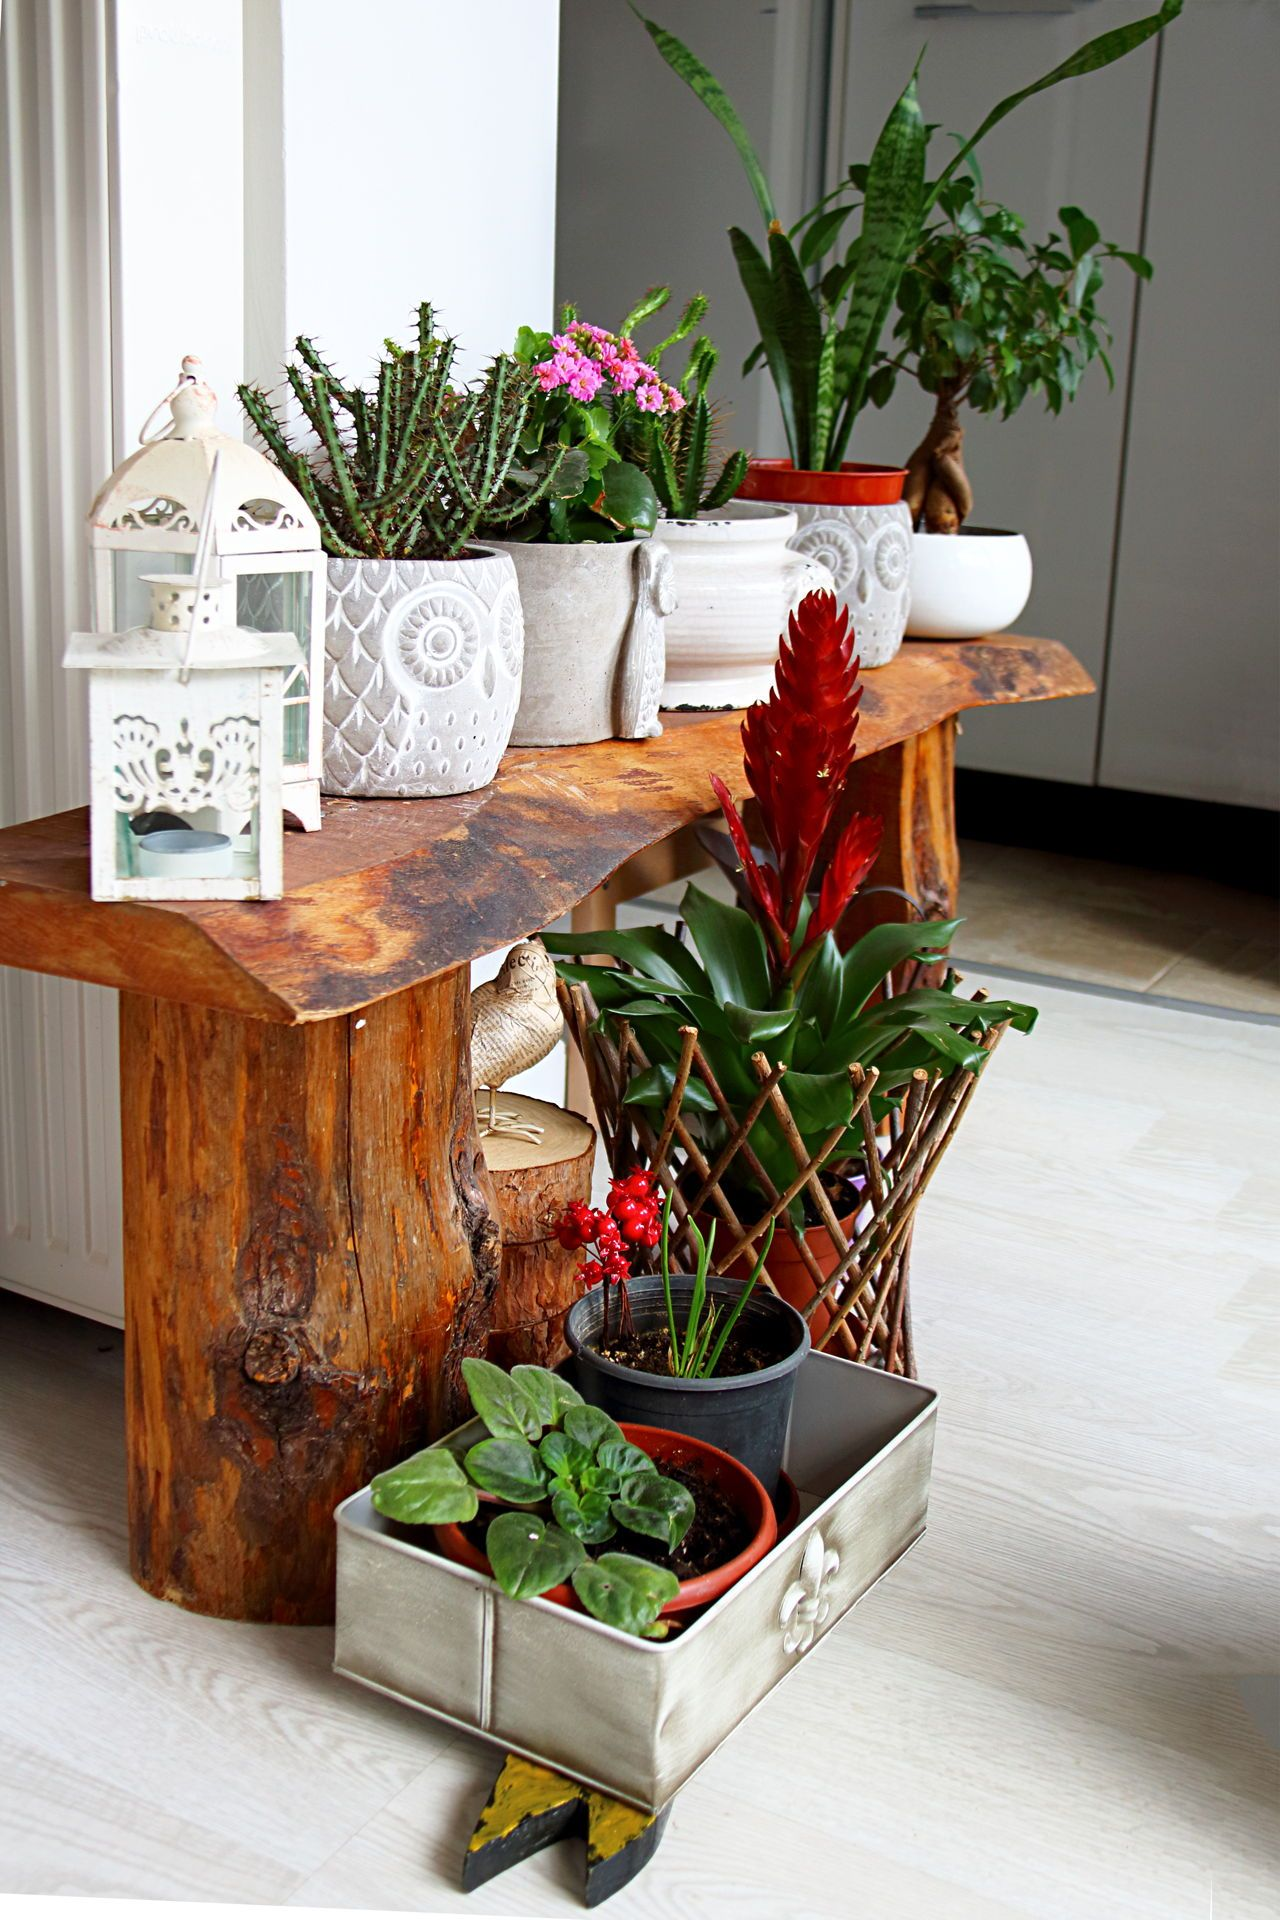 Dress Up Your Home With These Indoor Plants That Don't